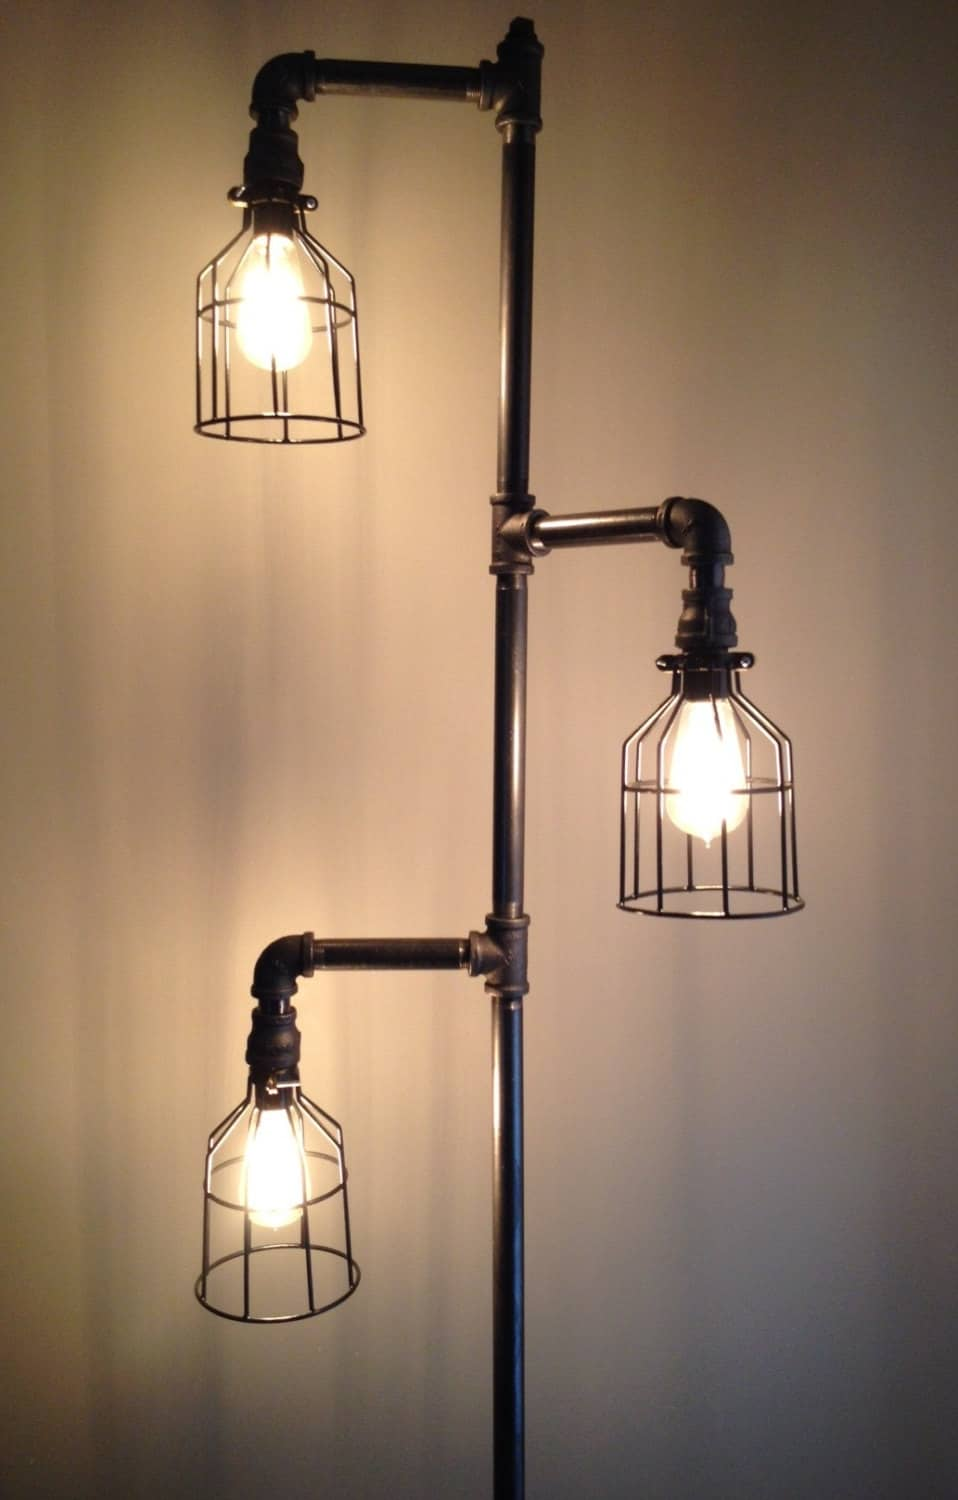 Cool Looking Lamps edison bulb light ideas: 22 floor, pendant, table lamps